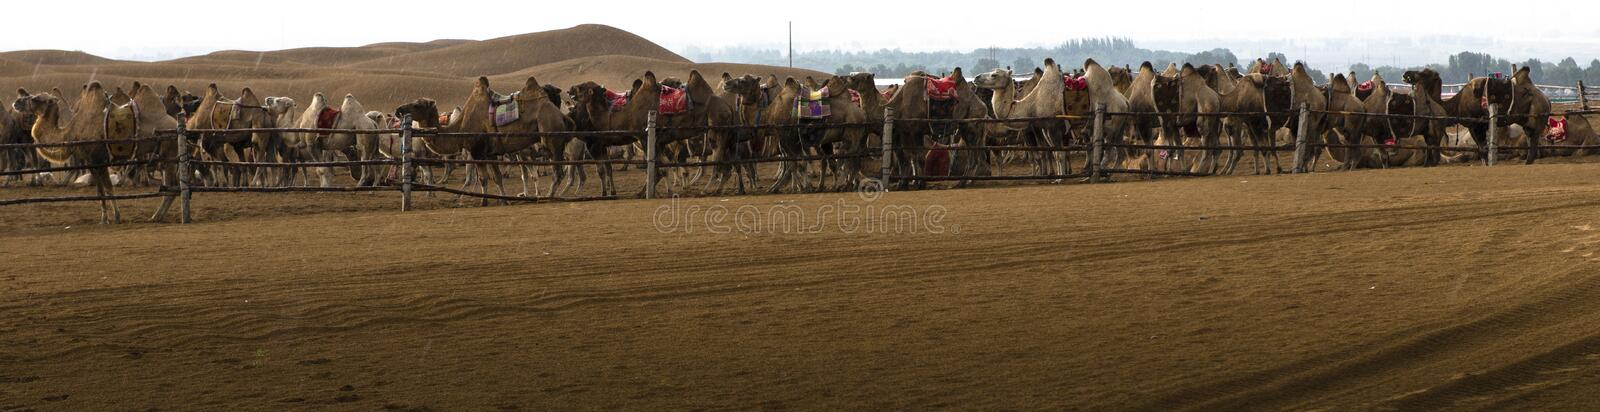 Camel and desert in the rain stock images